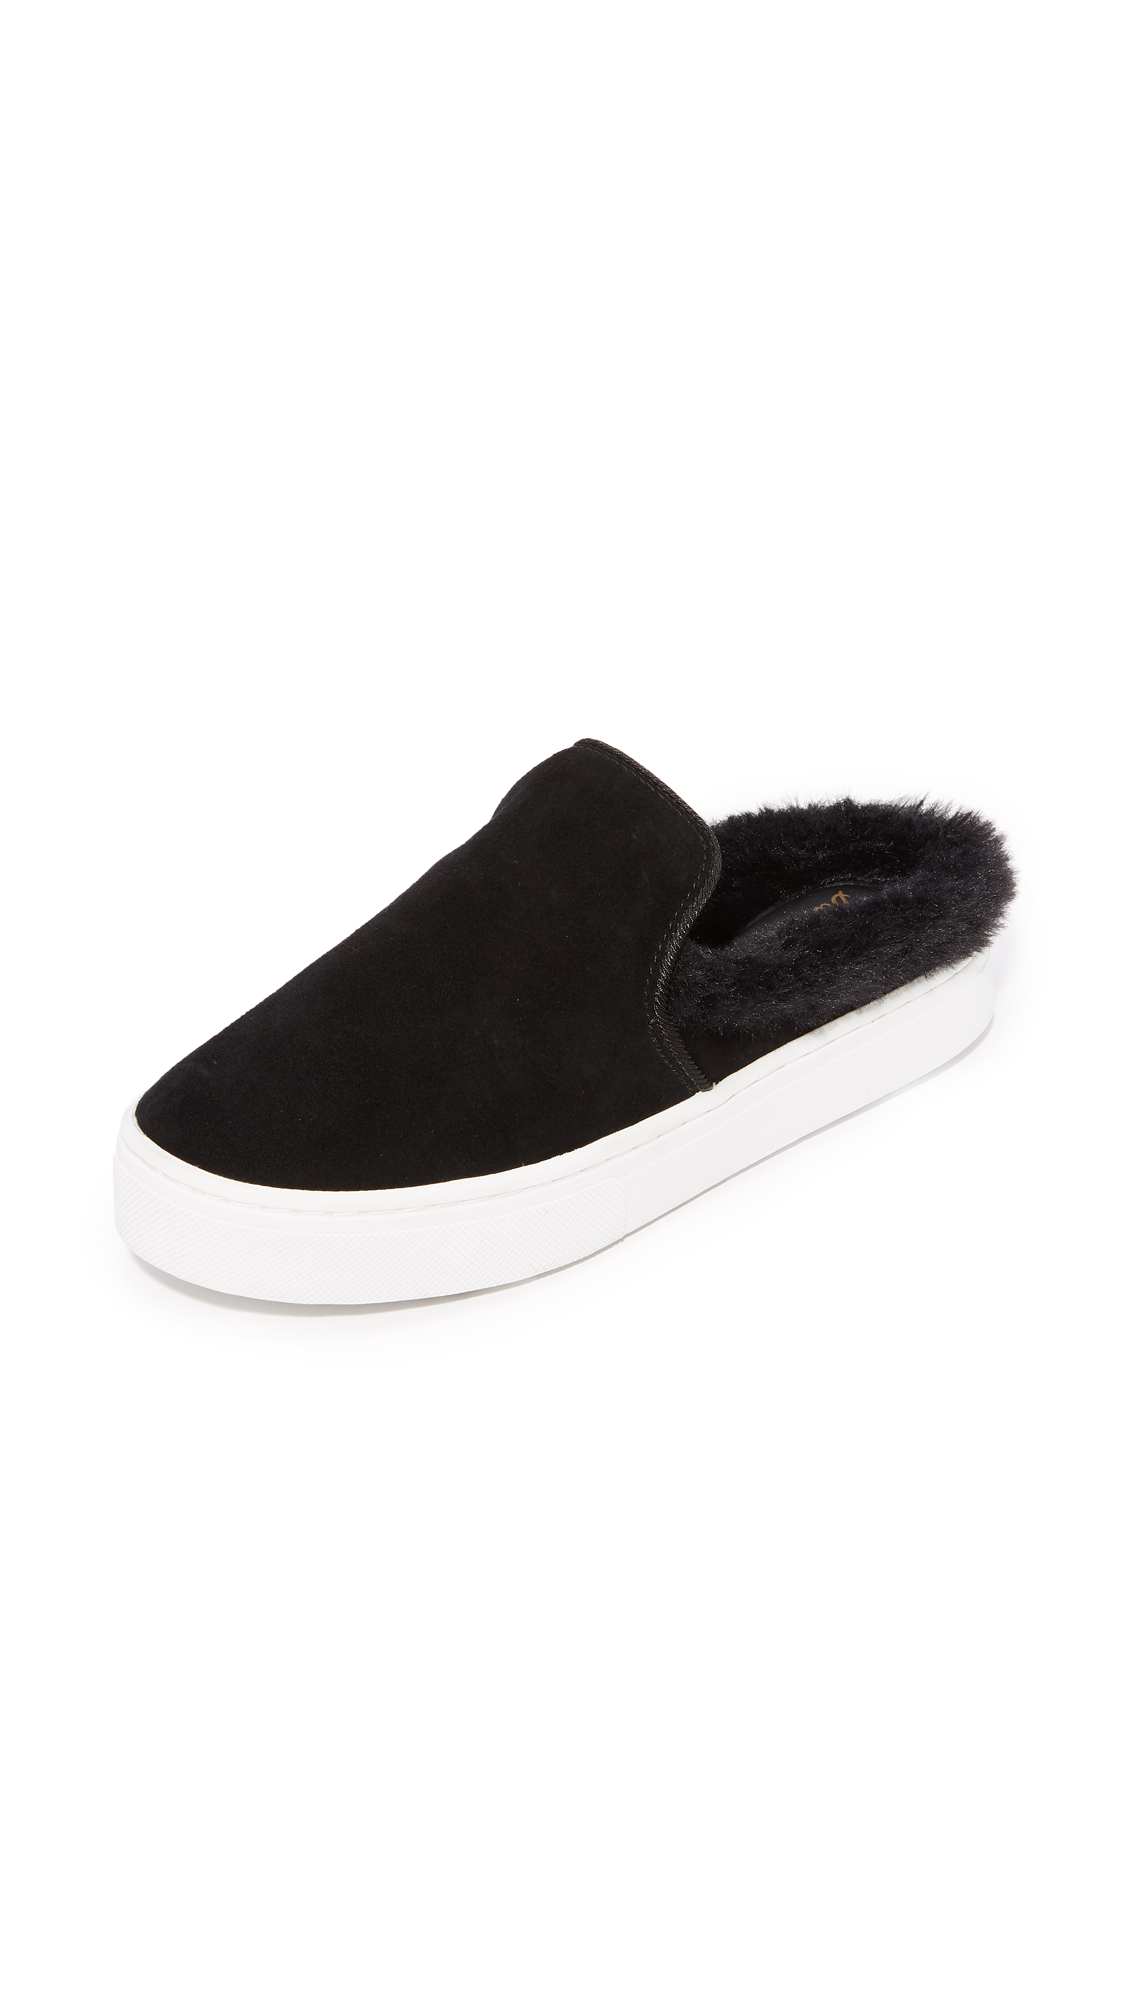 Sam Edelman Levonne Faux Fur Slip On Sneakers - Black